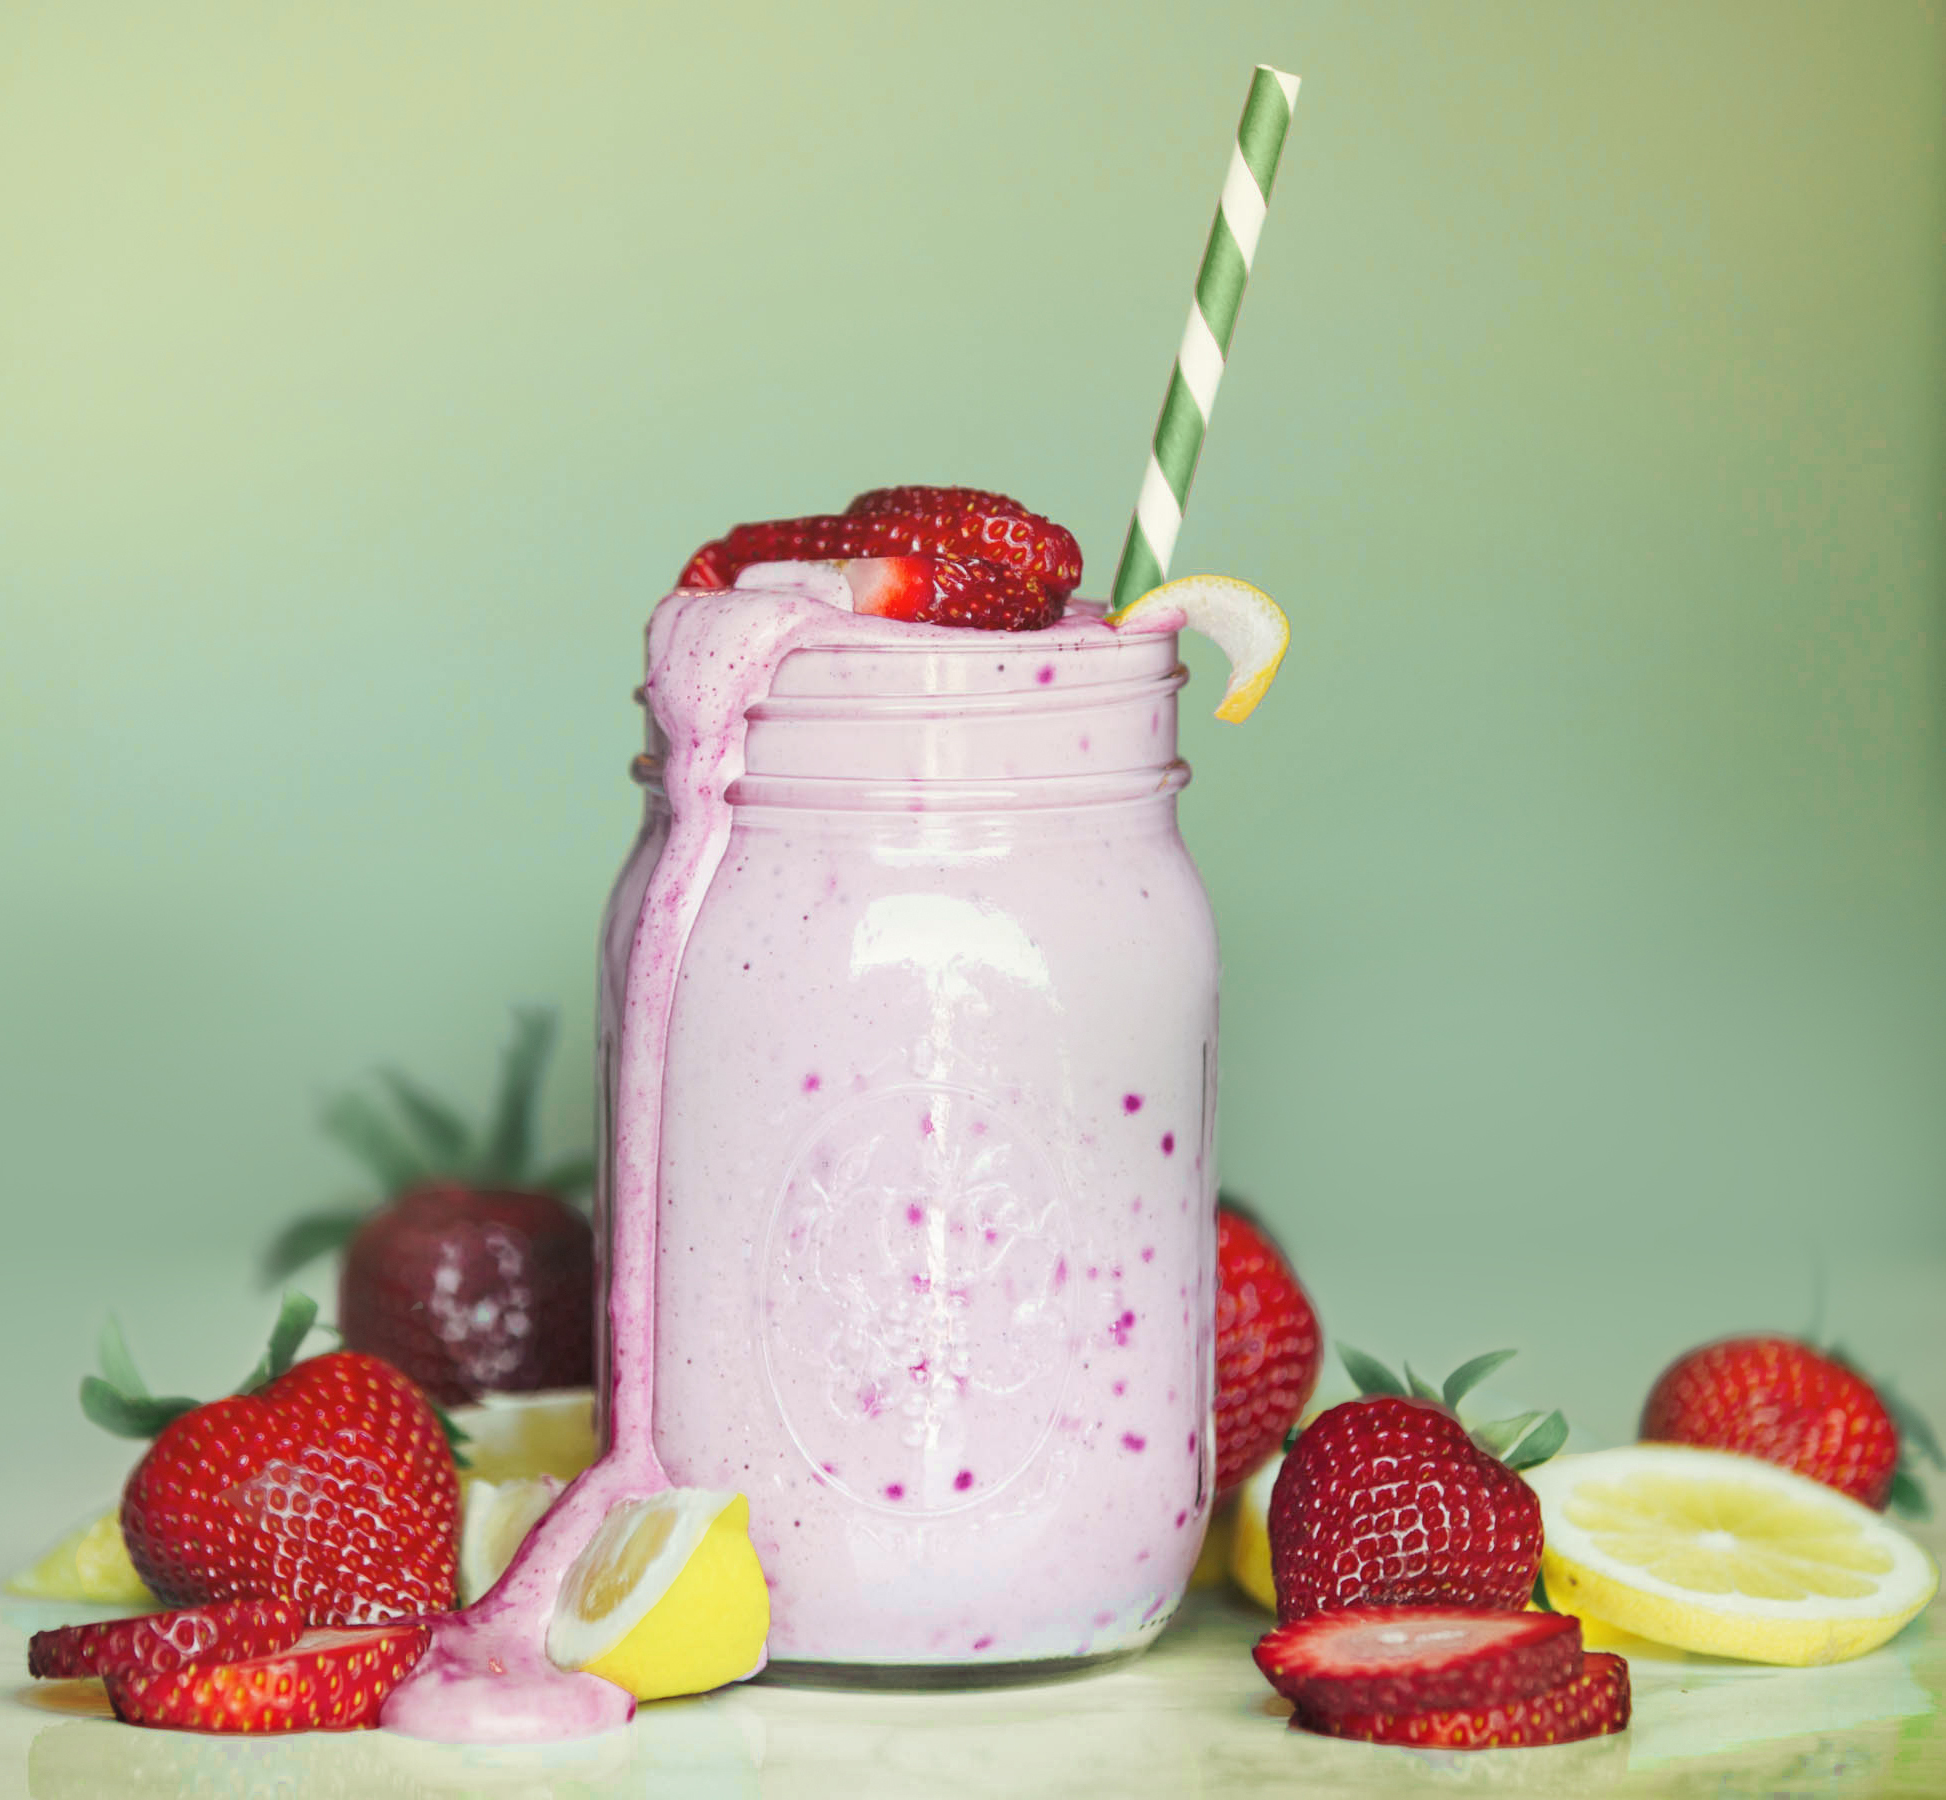 Vegan Strawberry Lemonade Shakeology in post